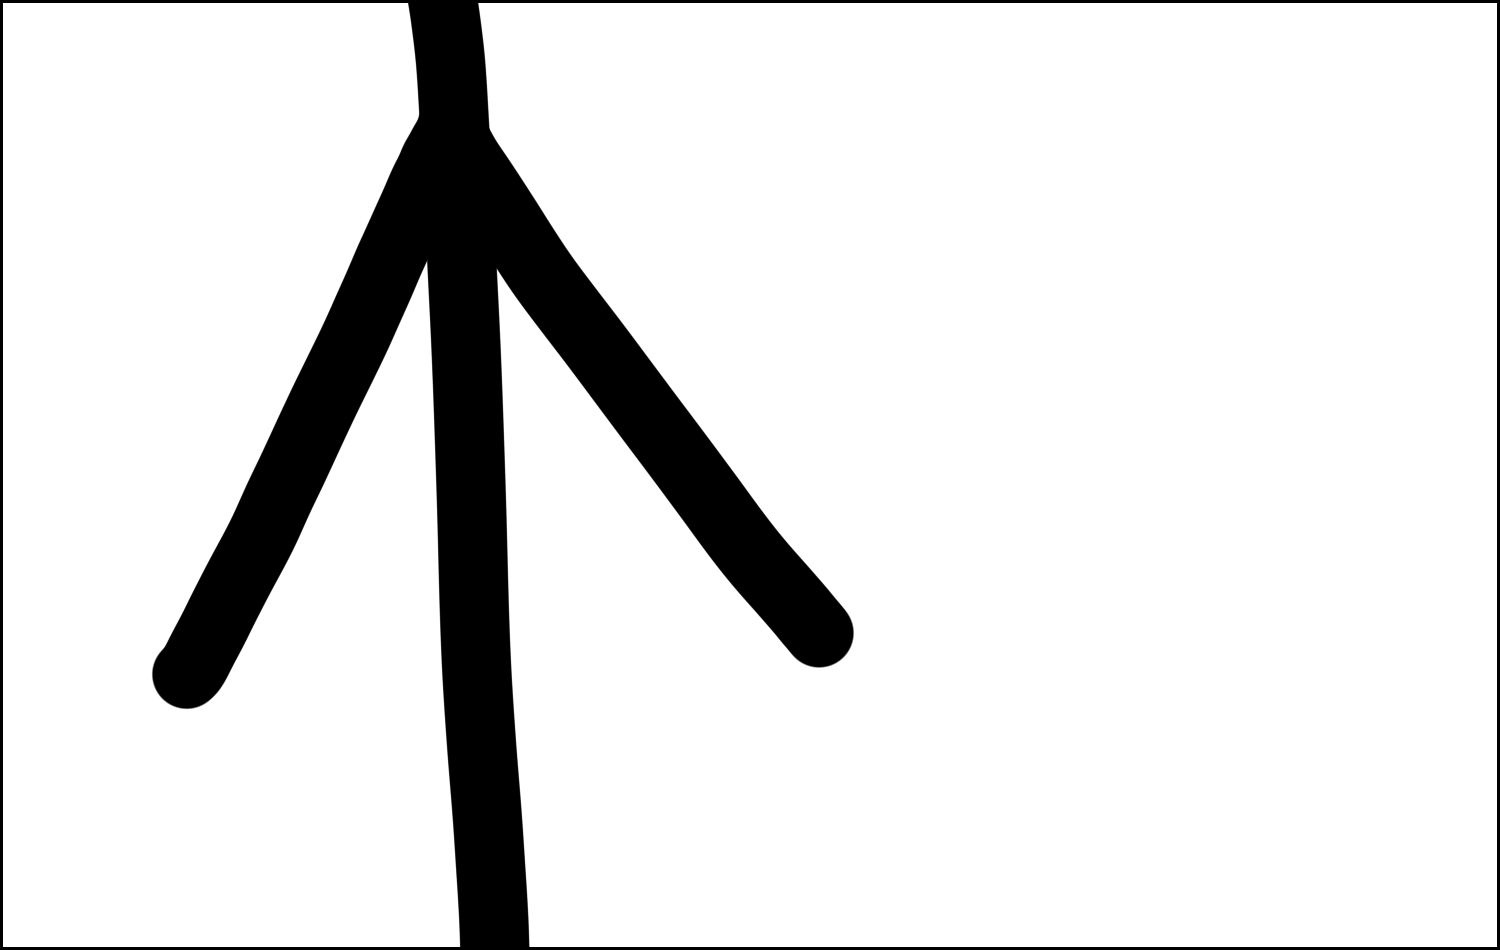 zoom in on stick figure's left arm